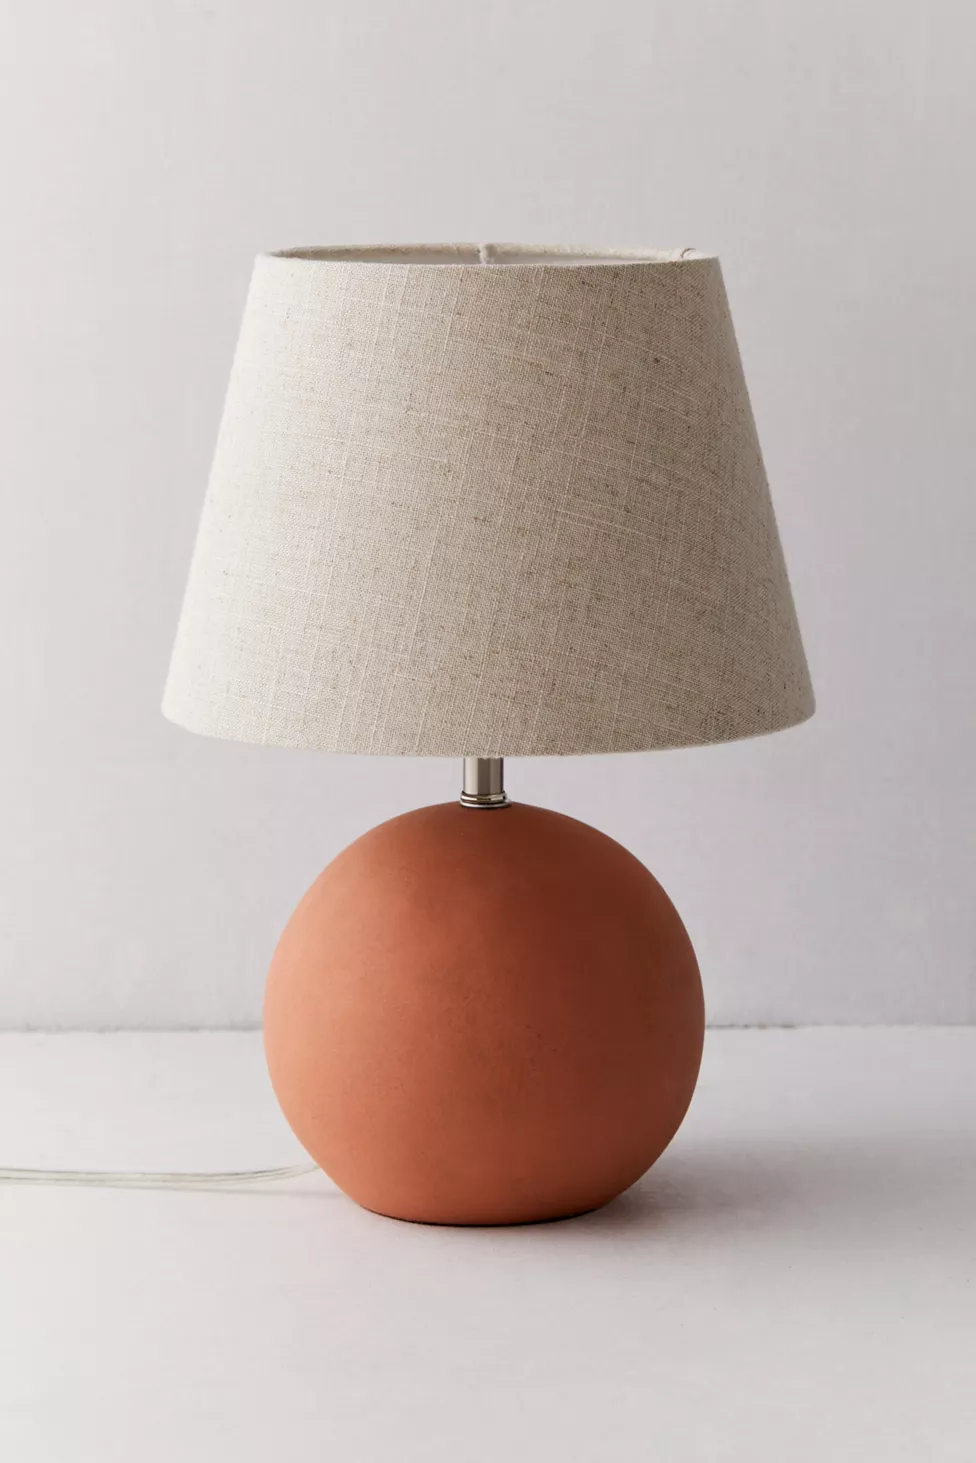 Mia Ceramic Table Lamp In 2020 Table Lamps For Bedroom Table Lamps Living Room Table Lamp Design